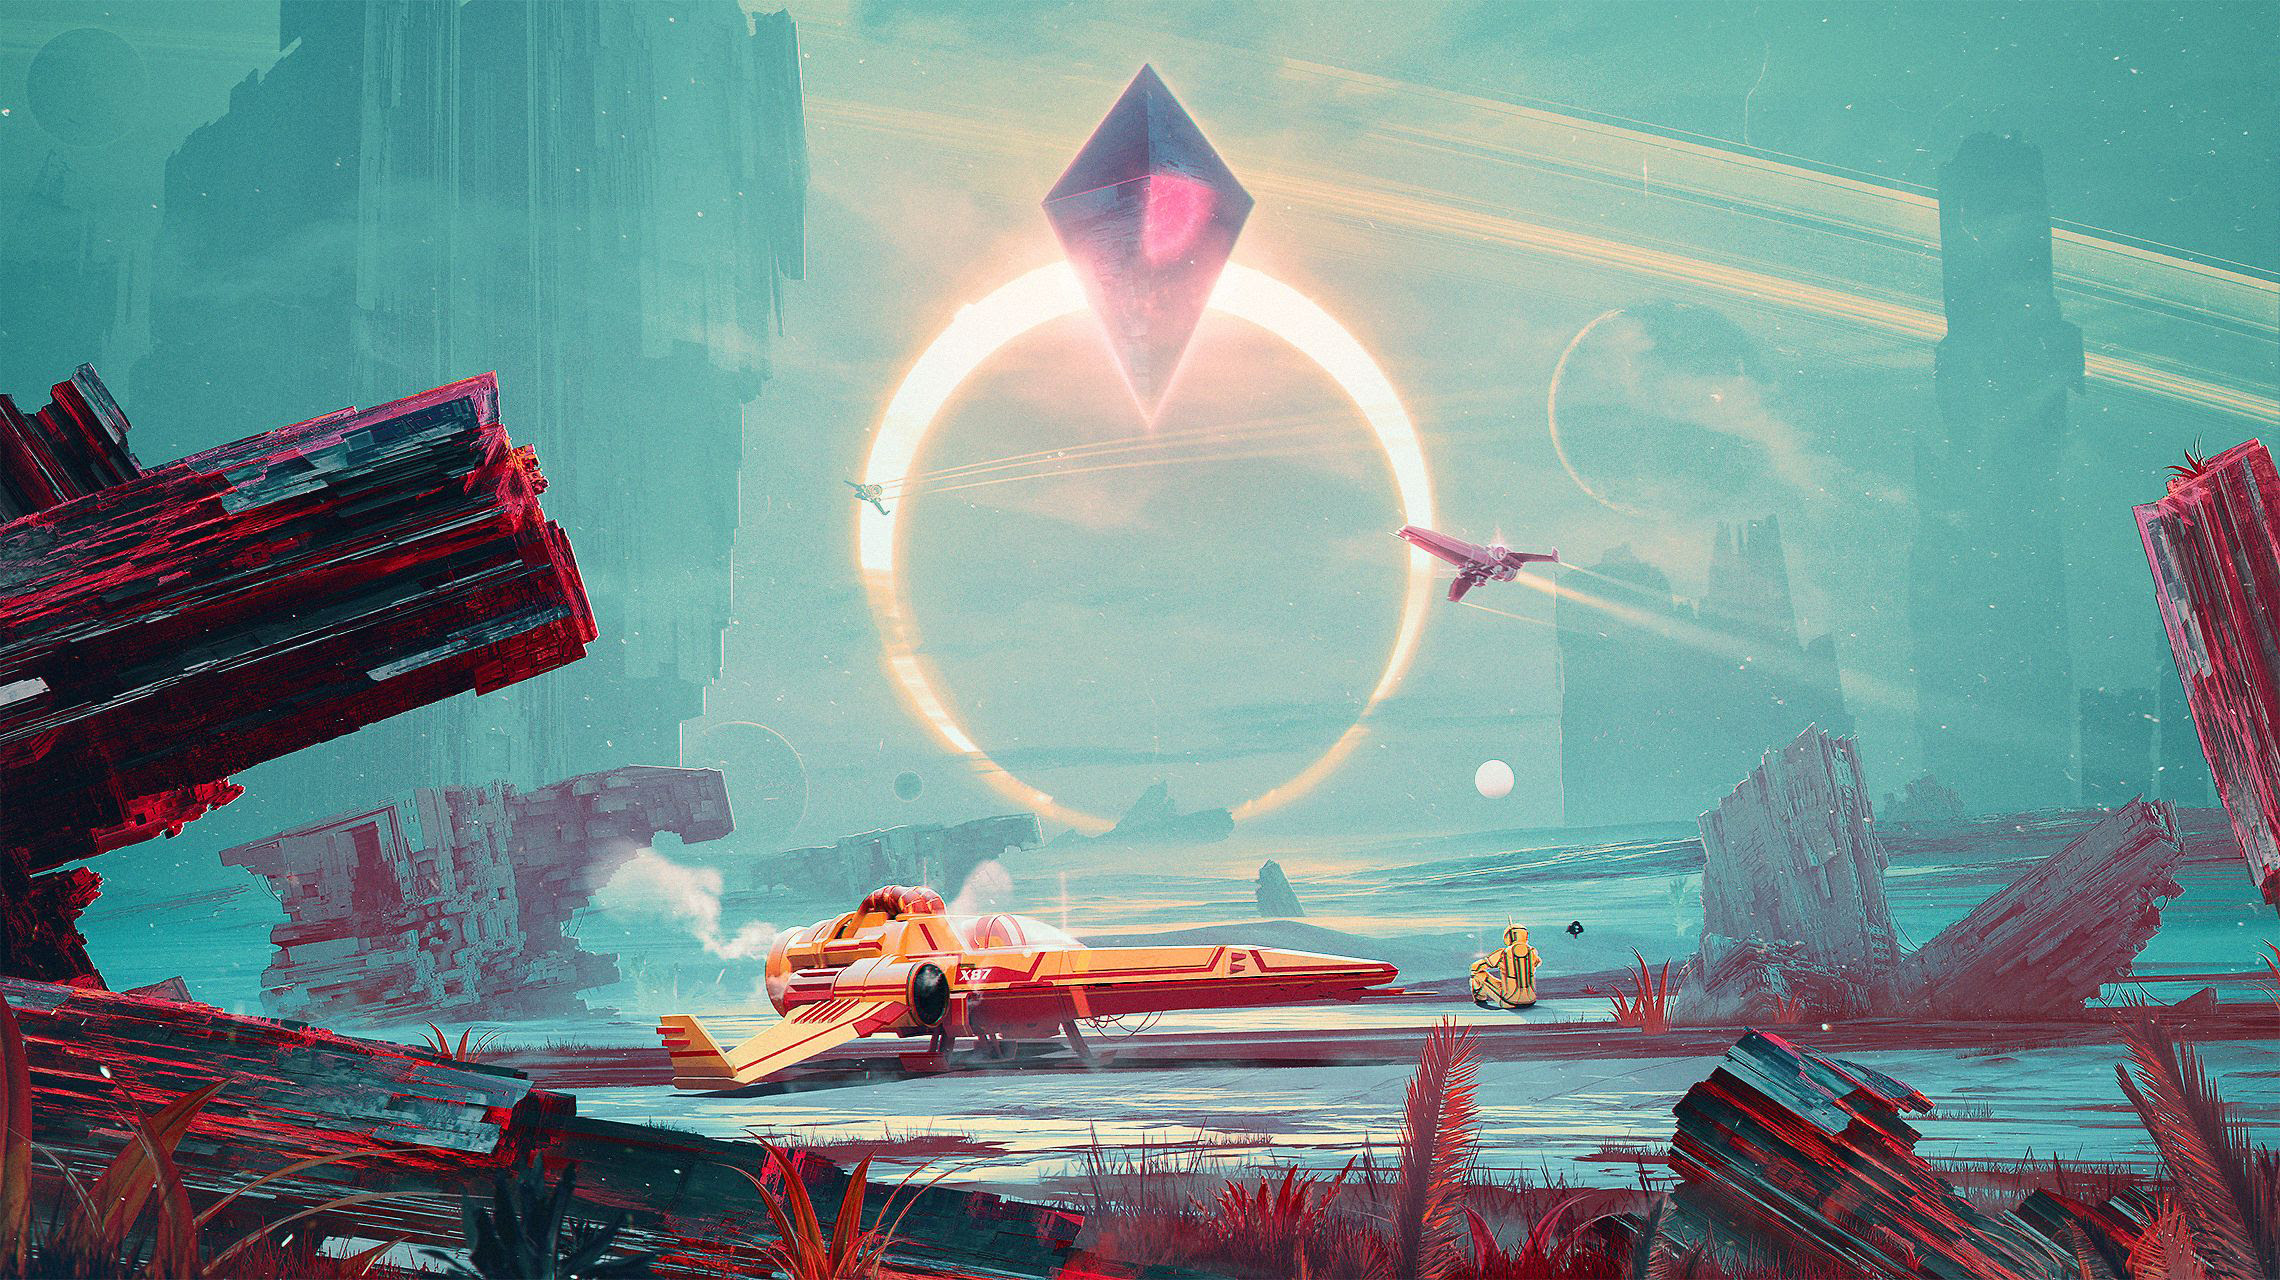 What's up with No Man's Sky and these mysterious packages? screenshot